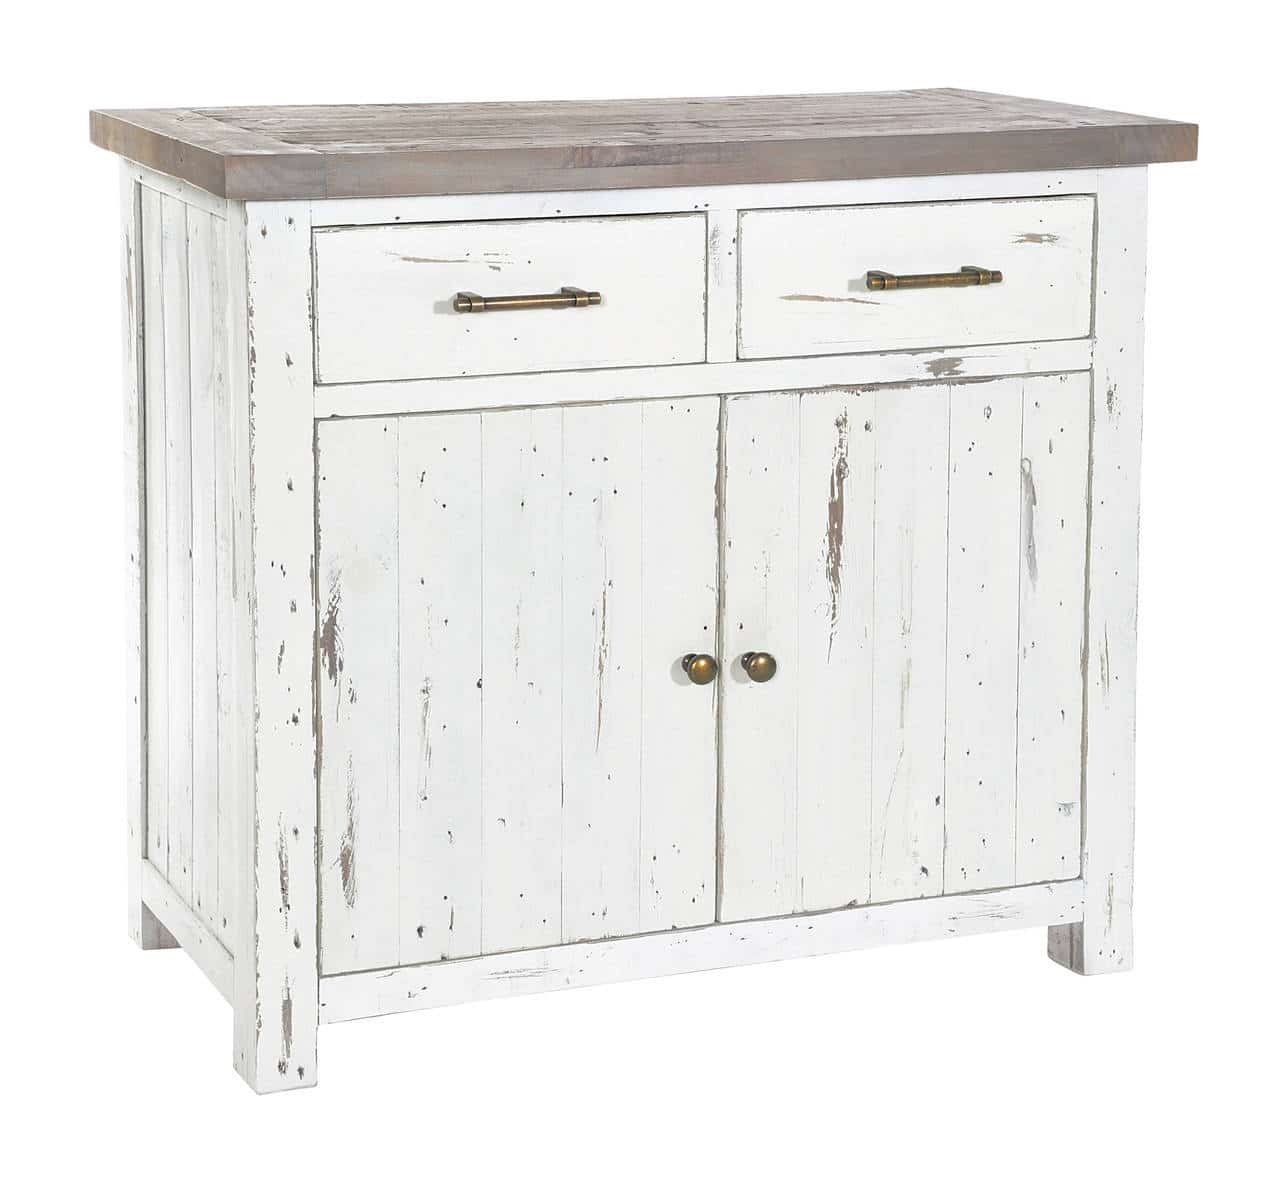 Sideboard Shabby Chic Purbeck Shabby Chic Small Sideboard